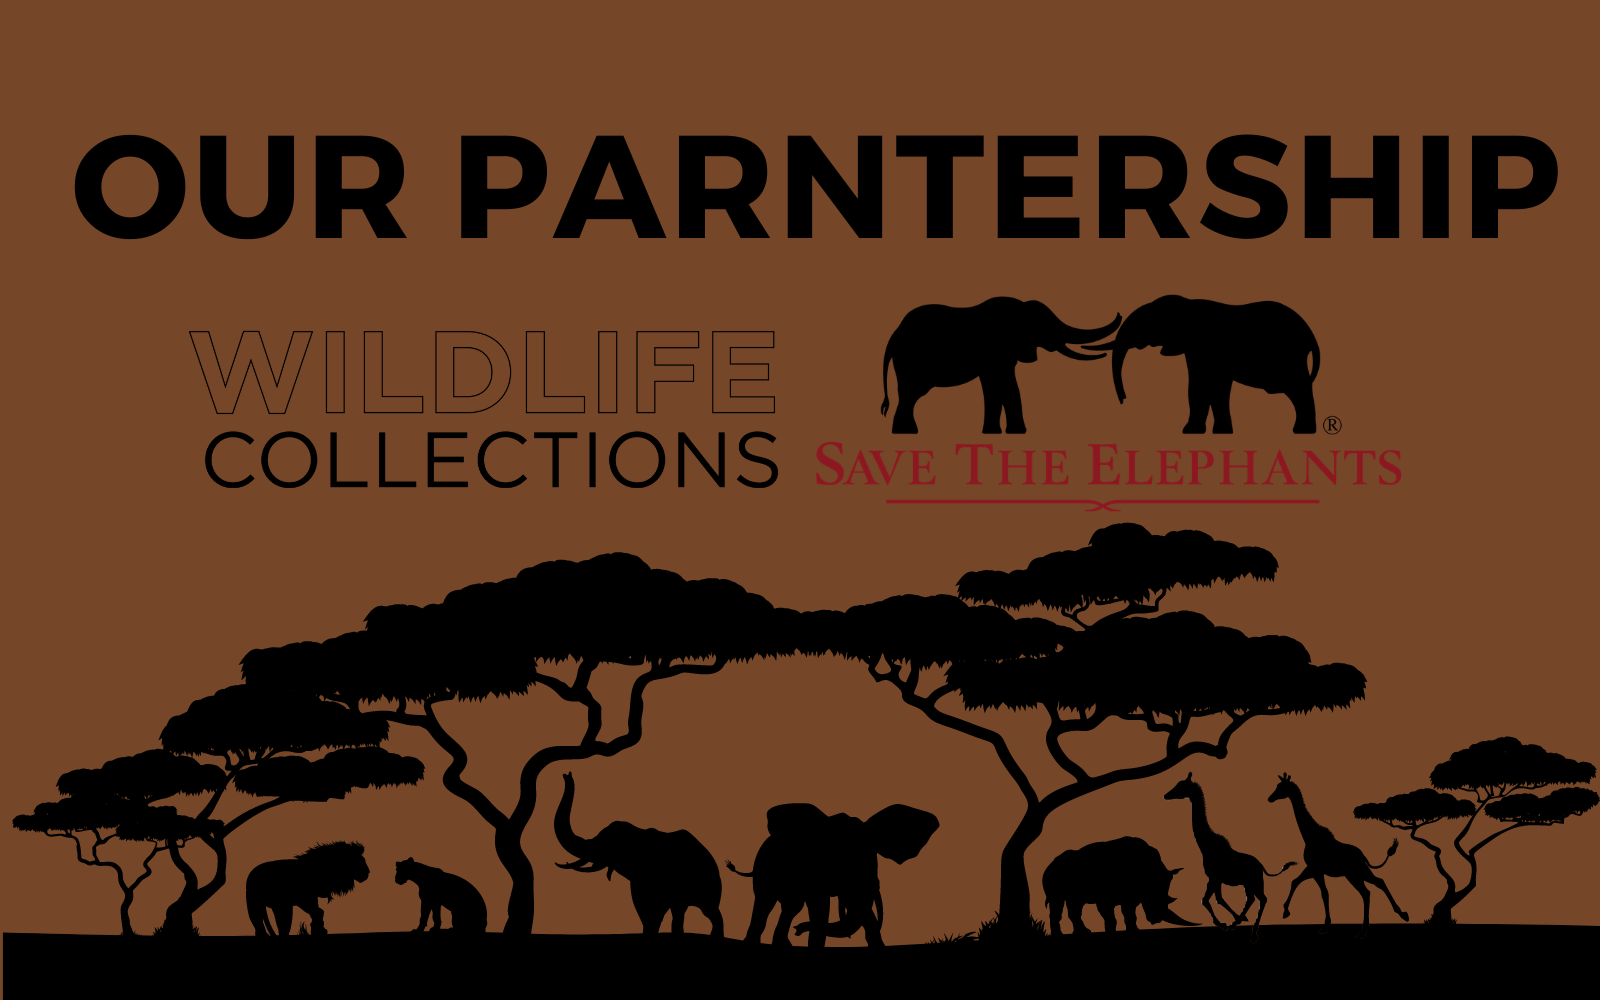 wildlife collections recommended by save the elephants